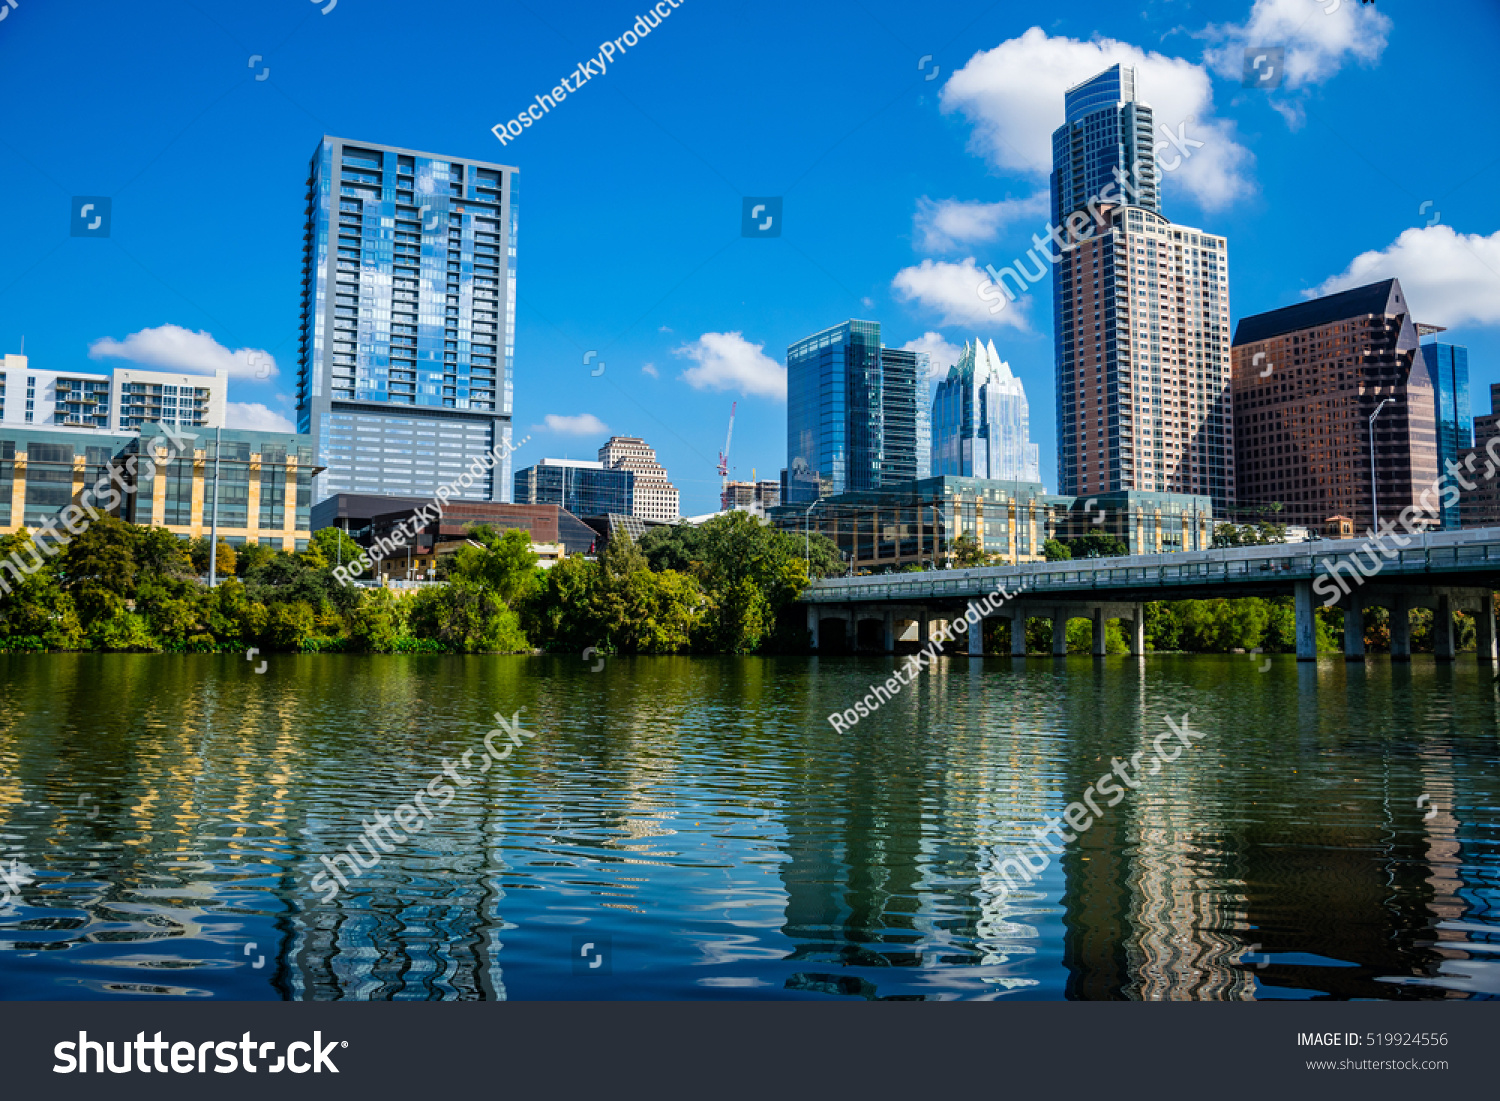 Town lake reflections on perfect summer stock photo 519924556 town lake reflections on perfect summer stock photo 519924556 shutterstock buycottarizona Images